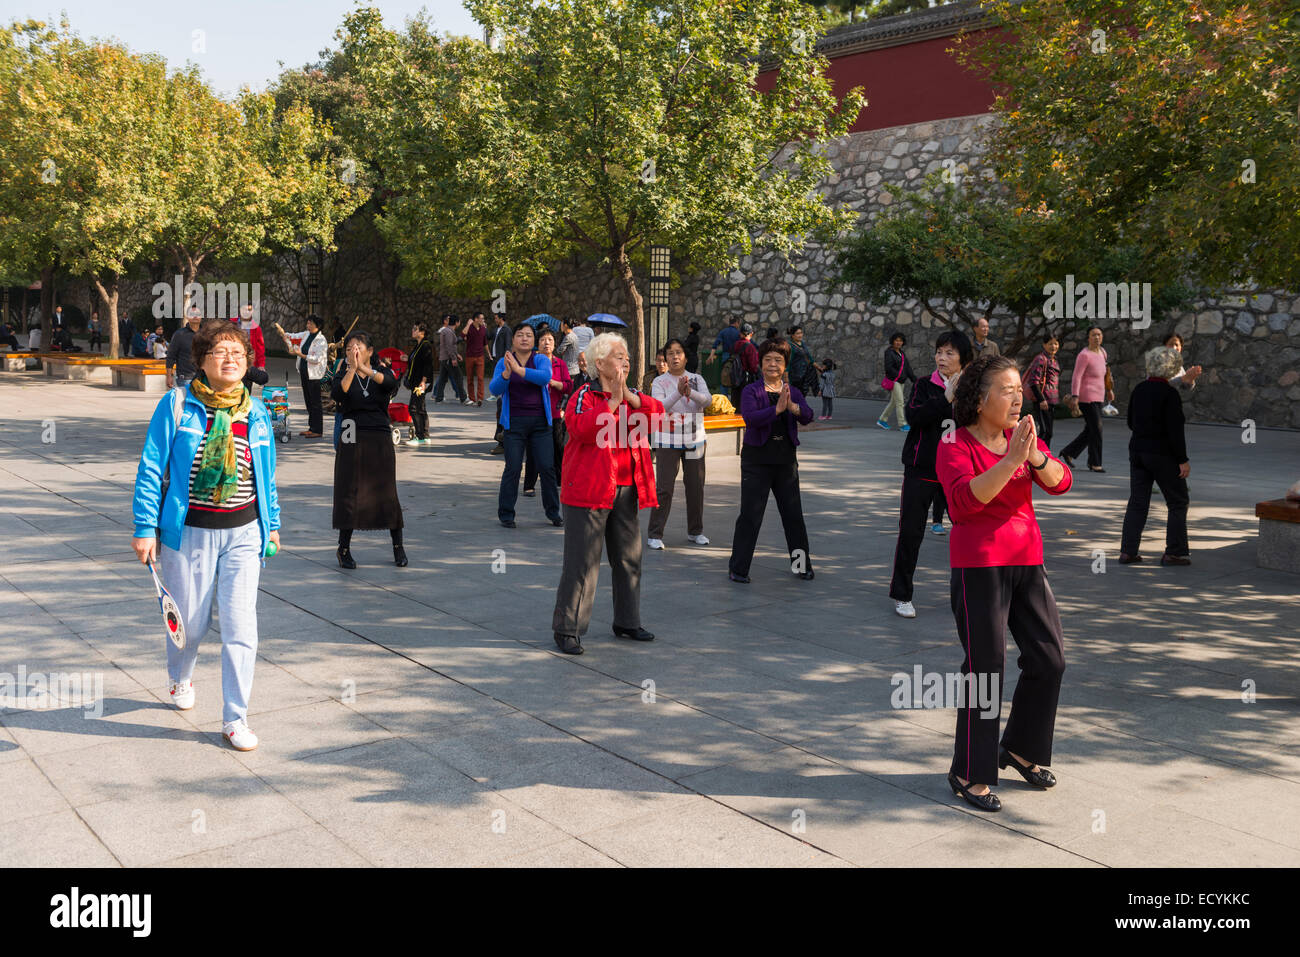 Elderly women dancing at a park in Xi'an, China - Stock Image